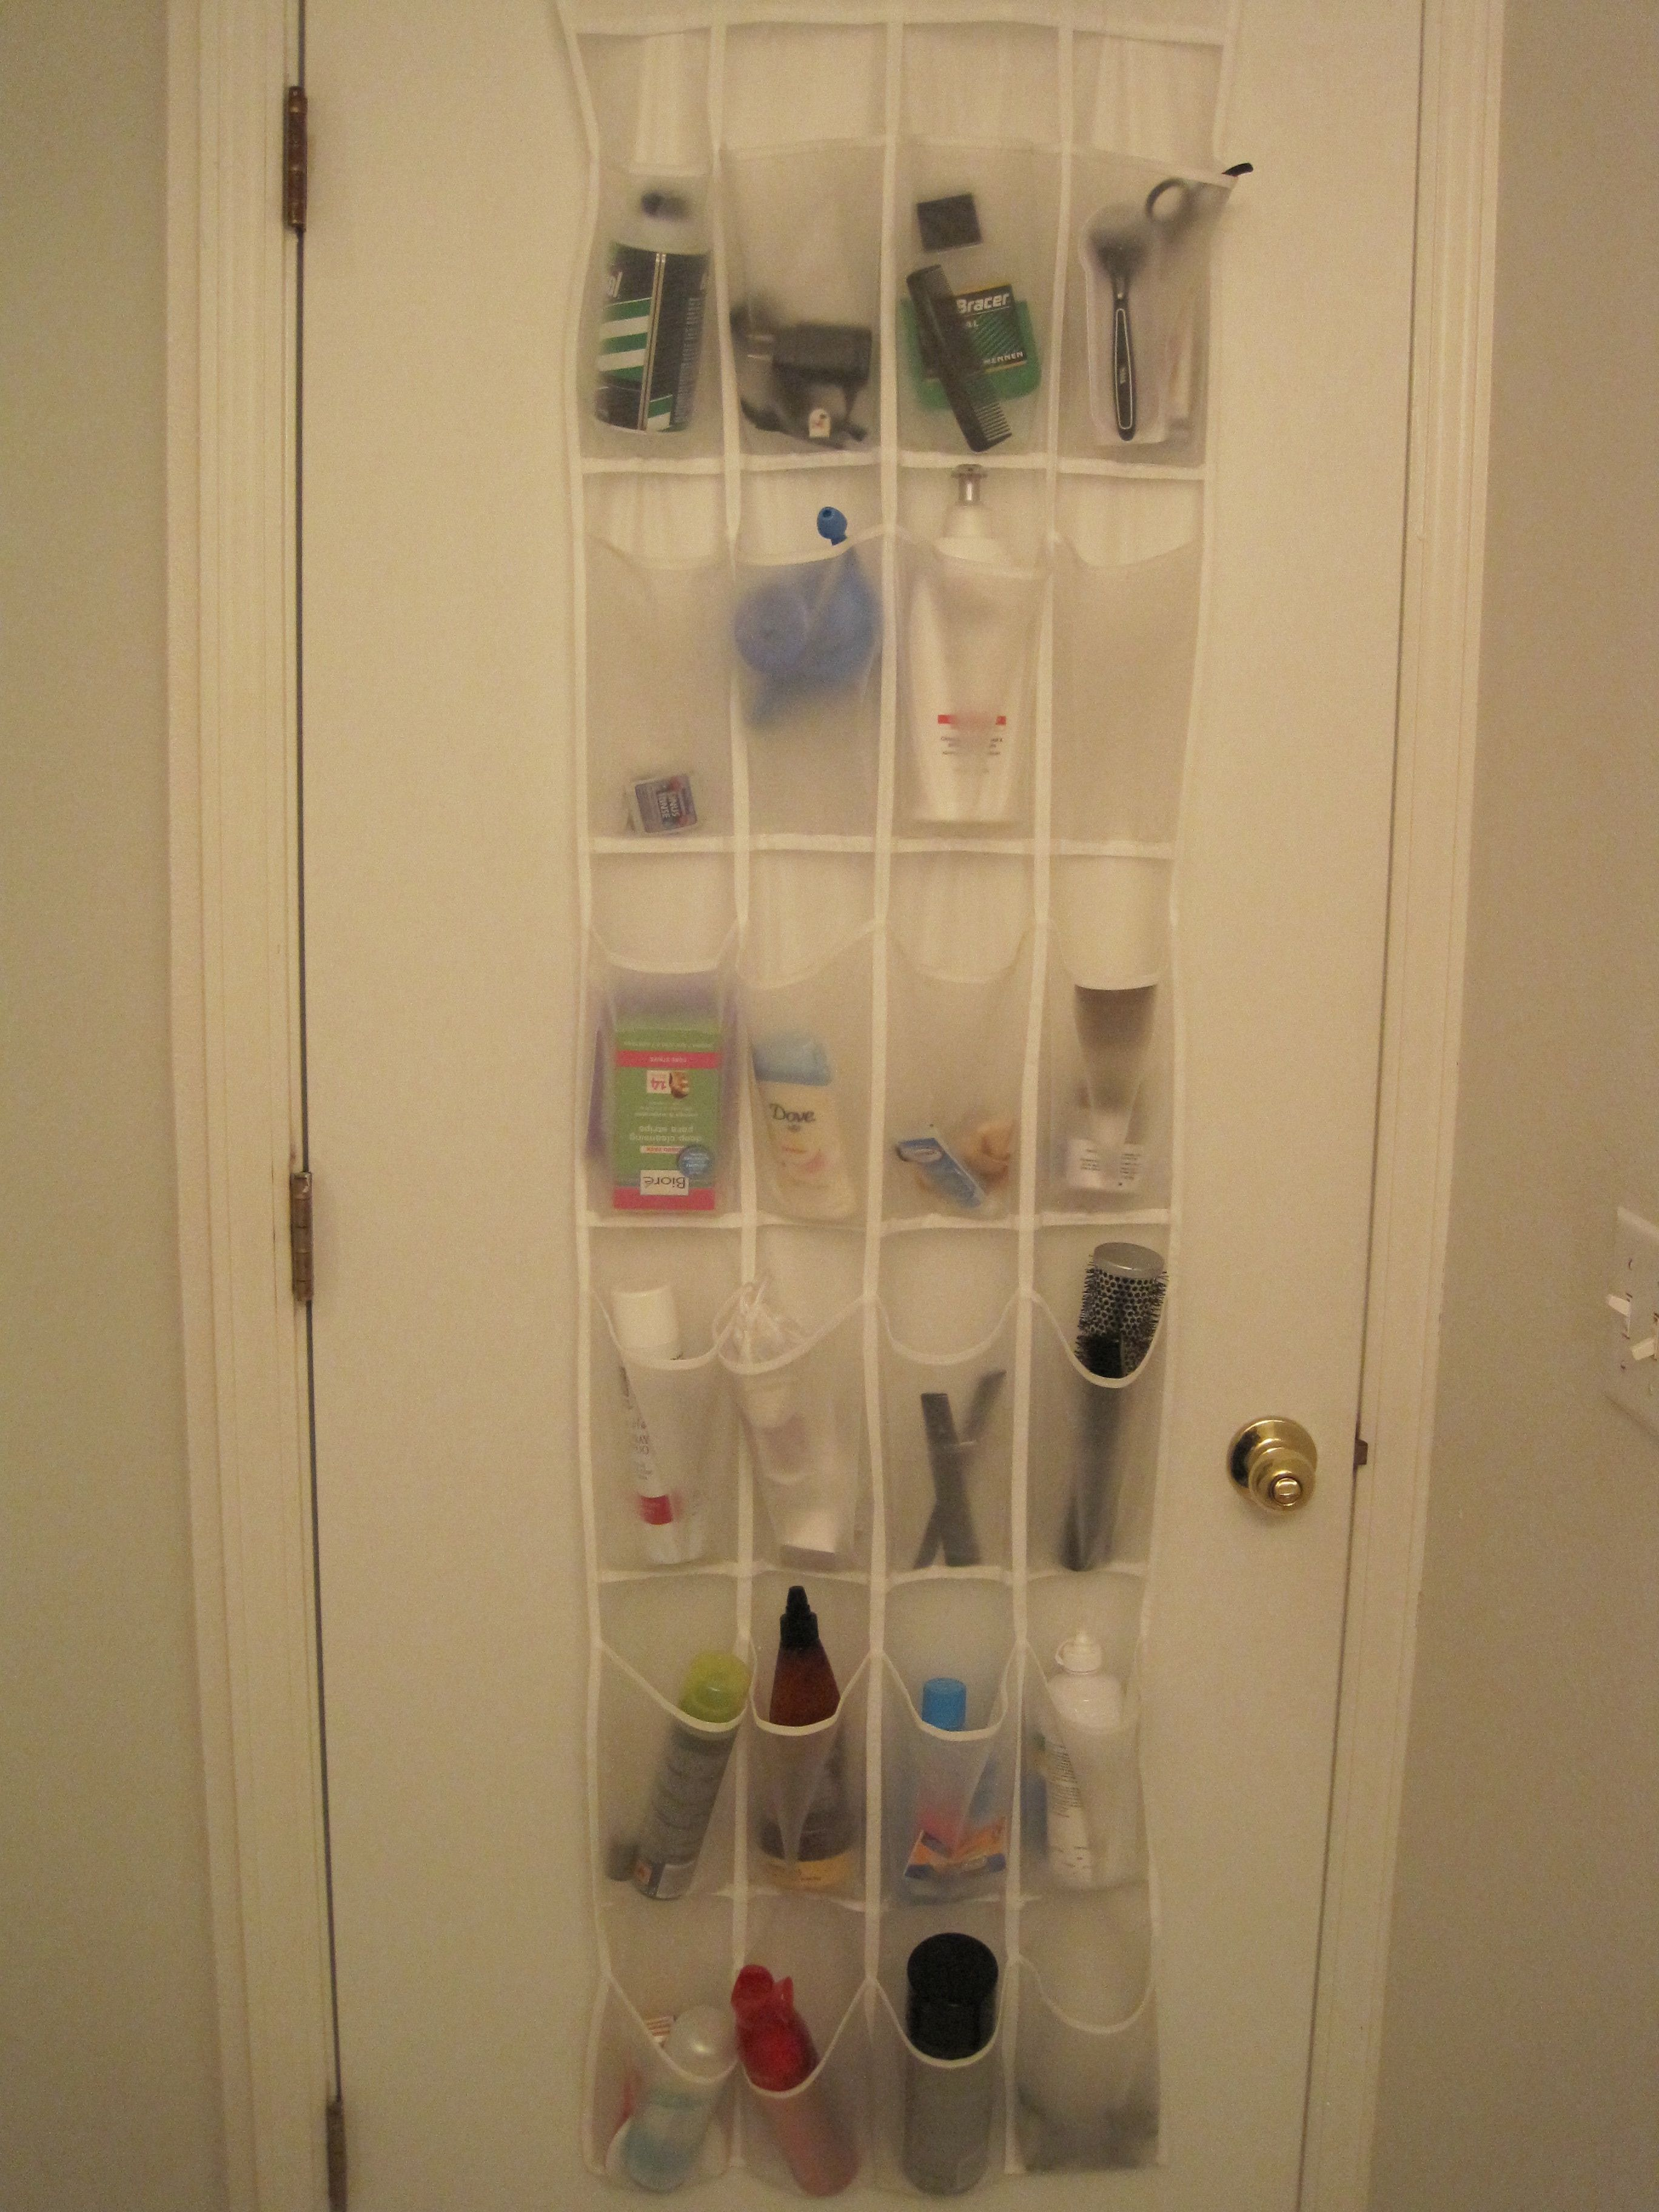 Over The Door Shoe Rack Used As Bathroom Storage Saw This On A